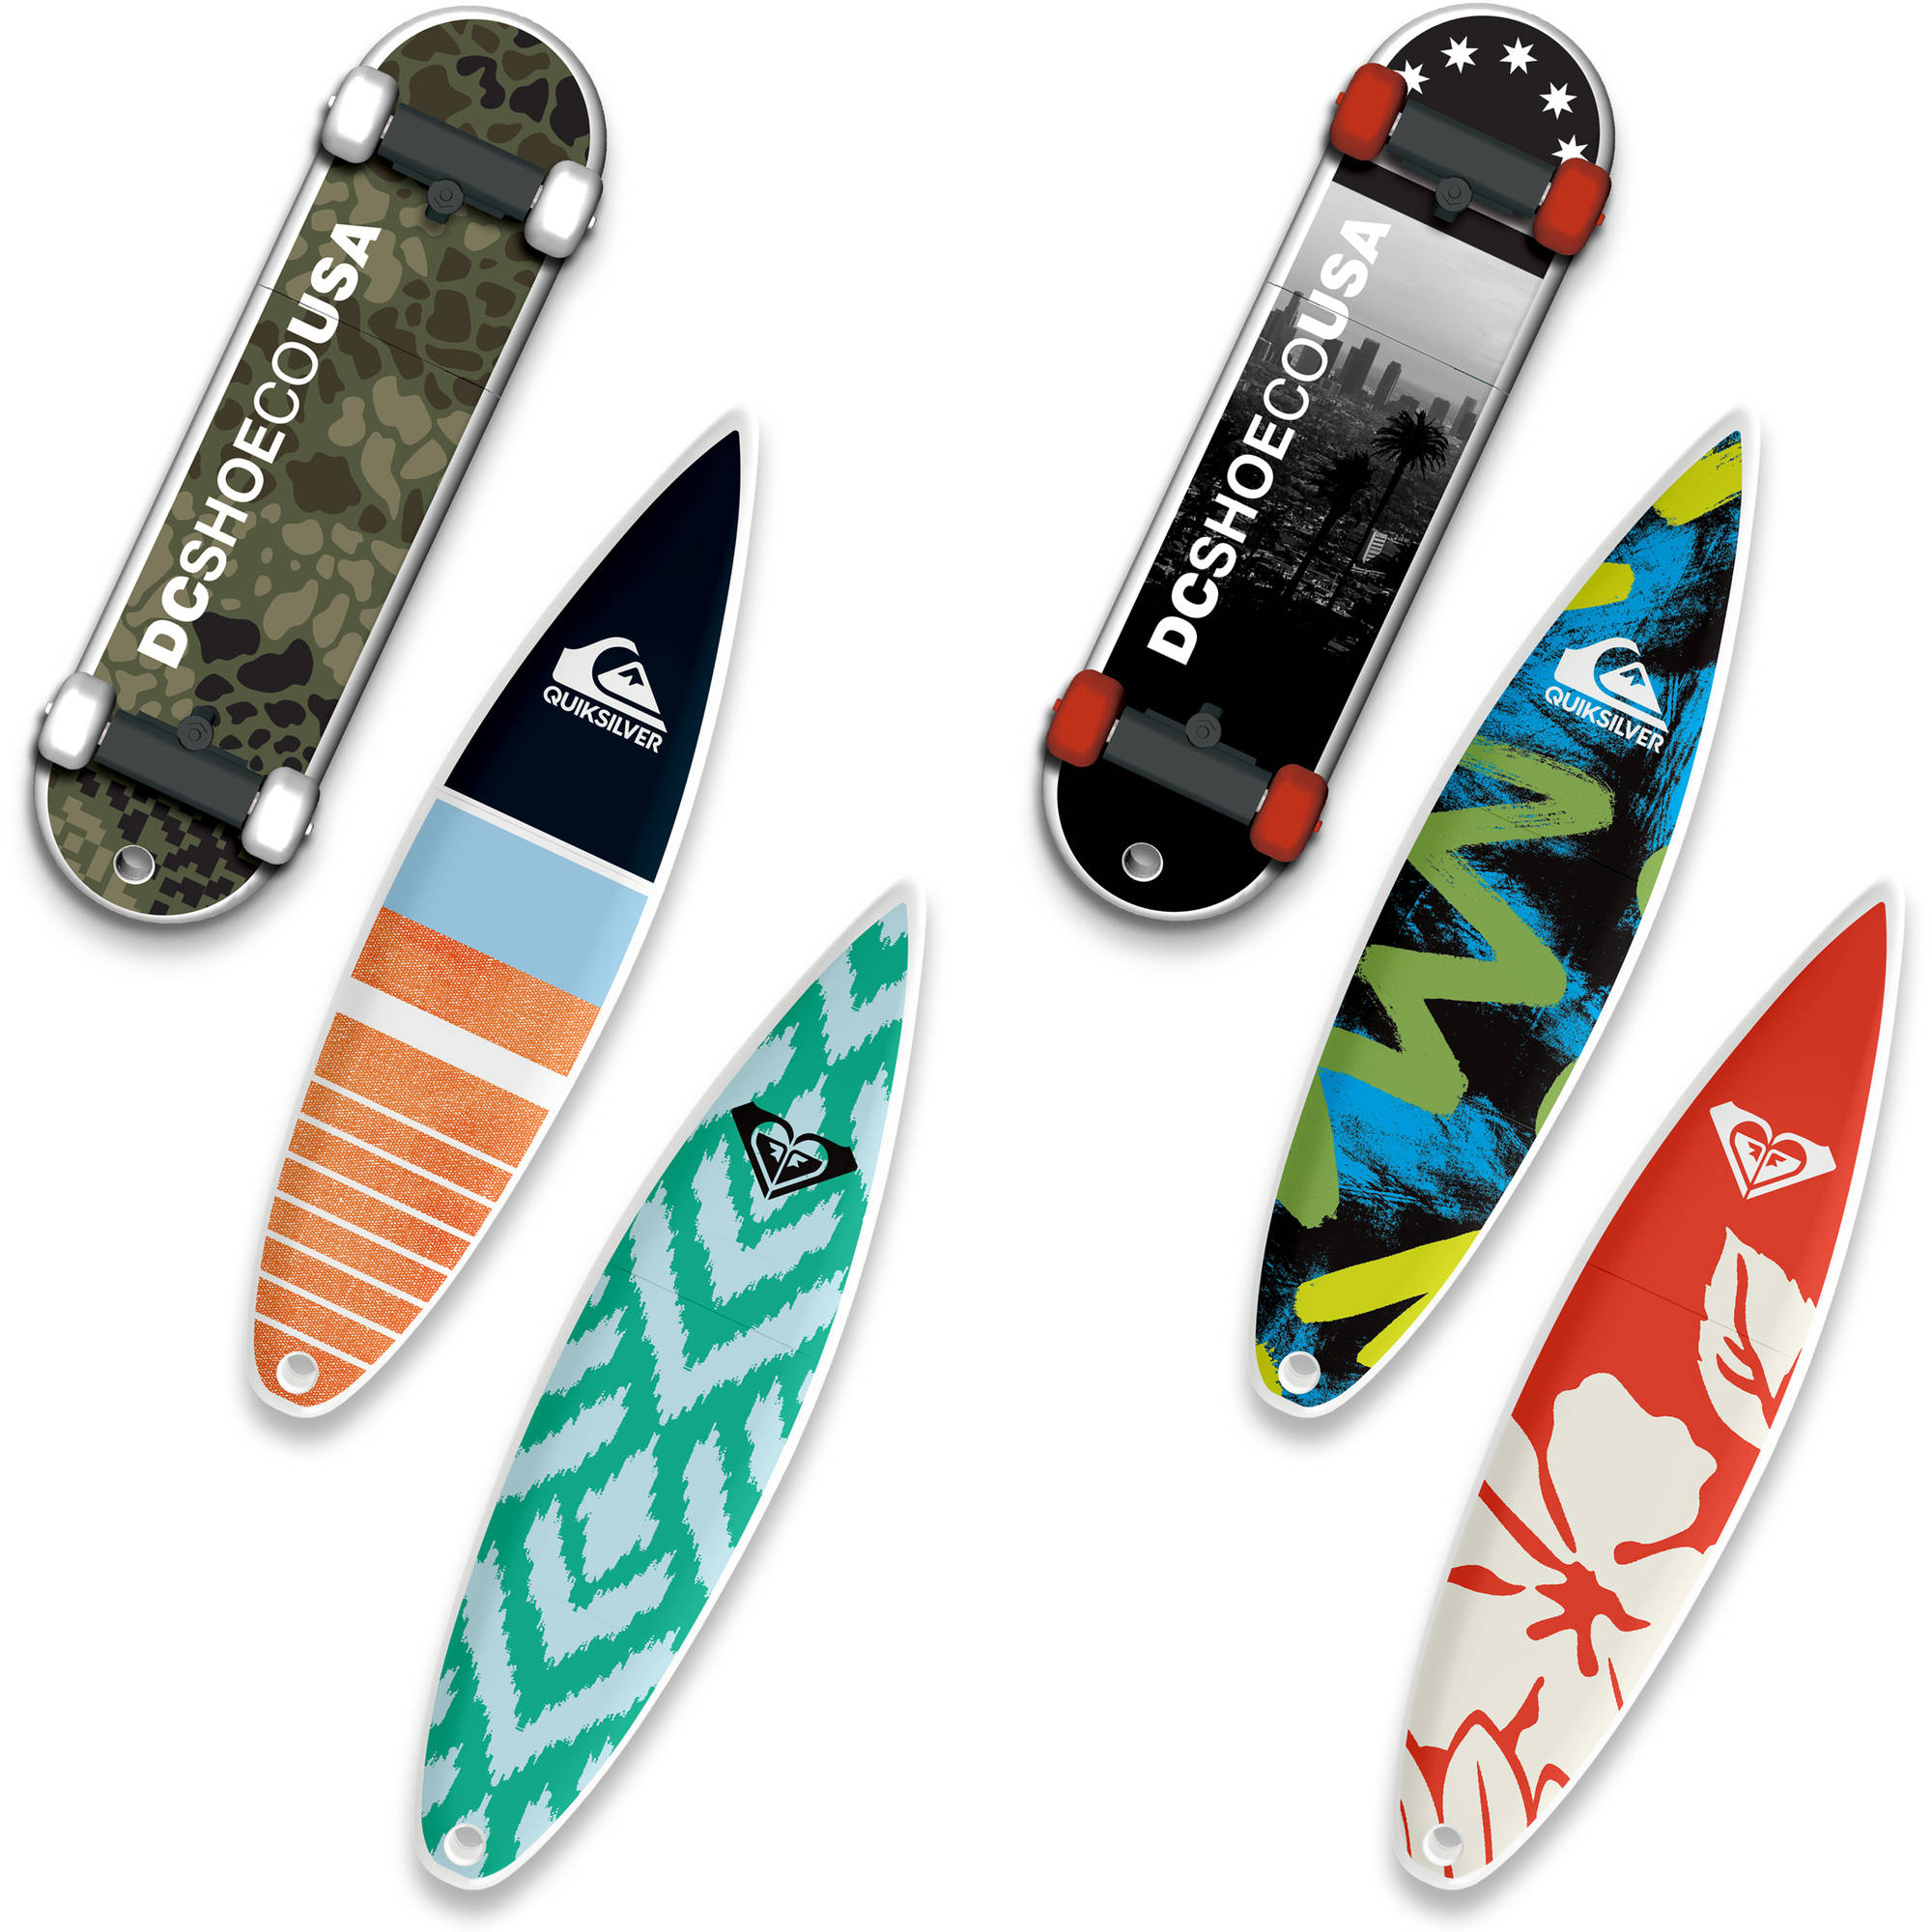 32GB EP ASD USB, DC Shoes SkateDrive, Quiksilver and Roxy SurfDrive, 6-Pack